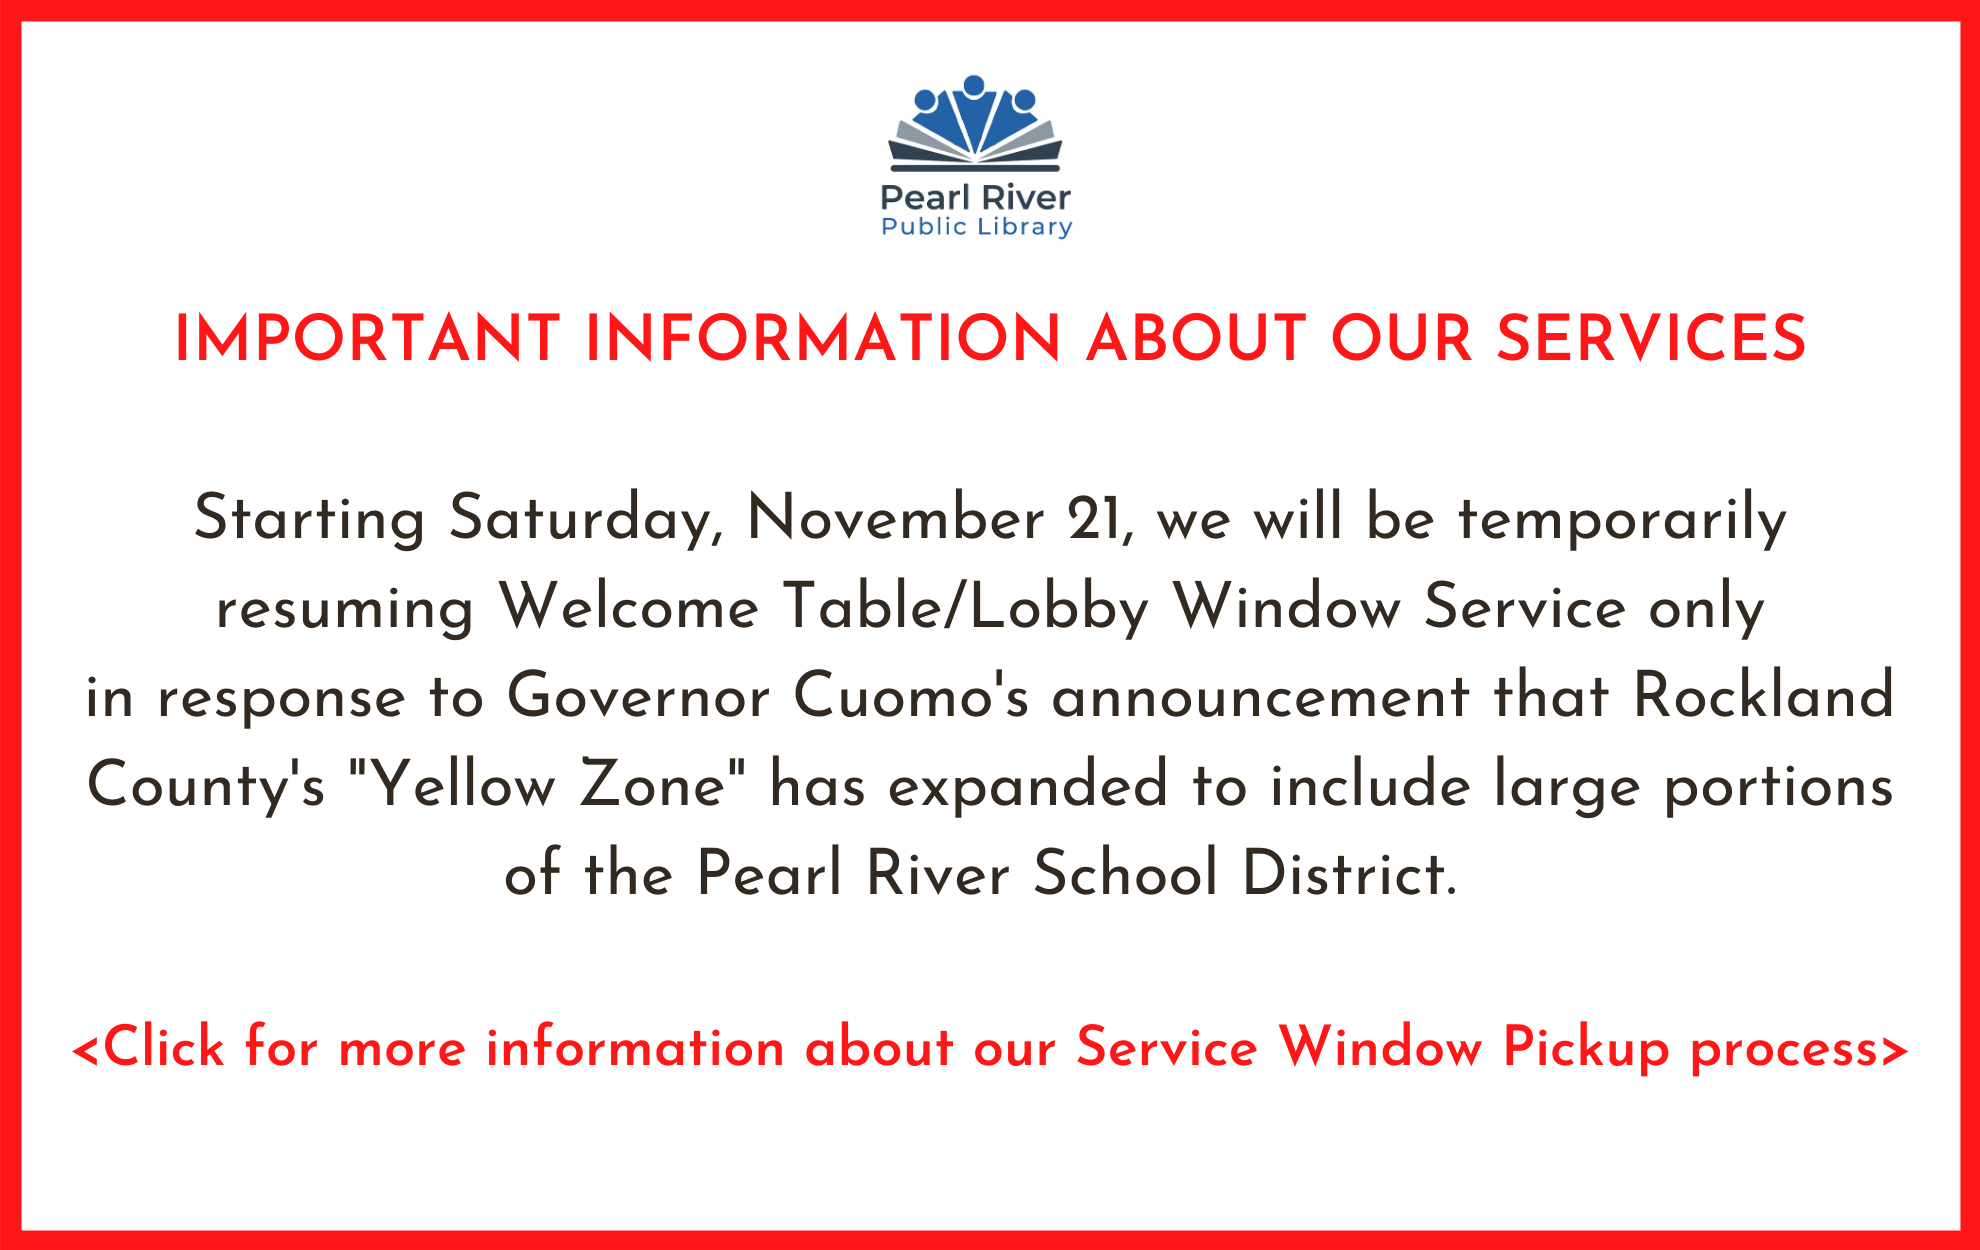 We are resuming window service only as a result of COVID. Click for more information.